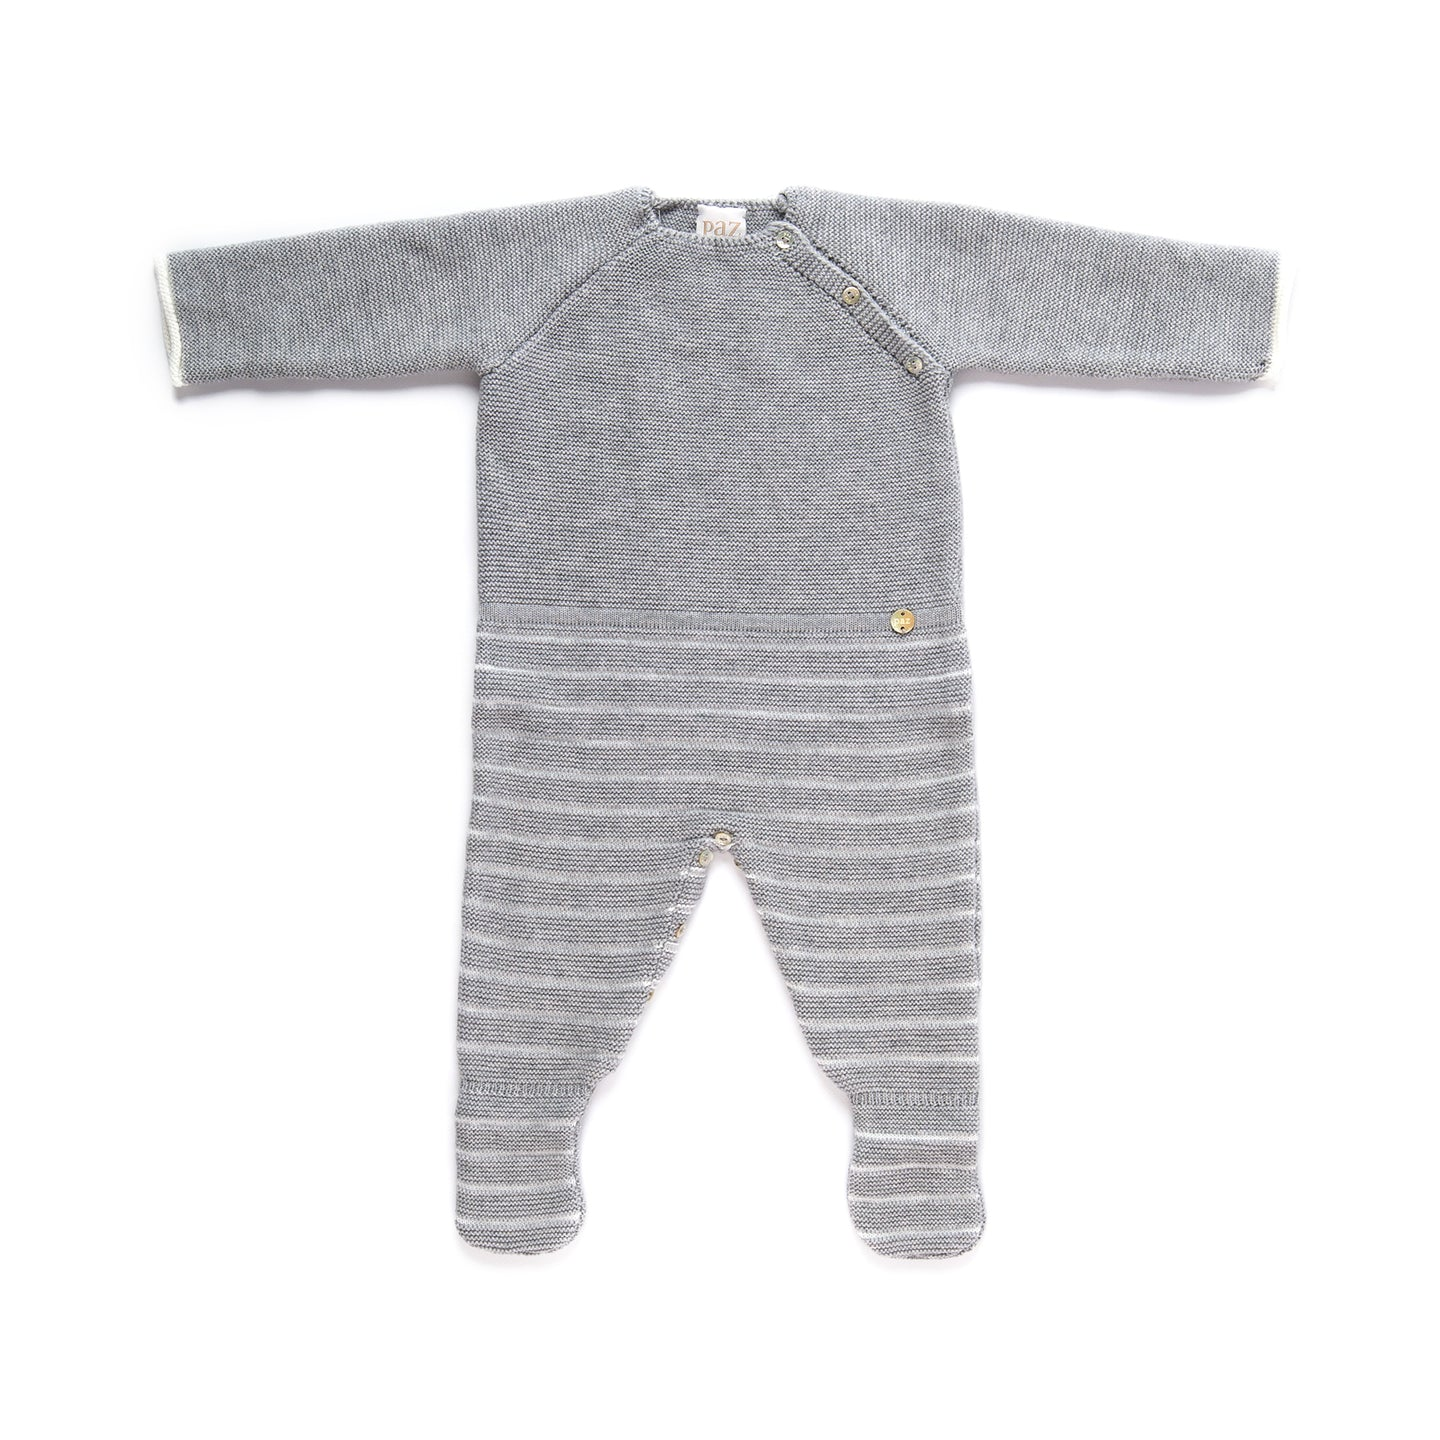 Paz Rodriguez Grey Knitted Winter Romper